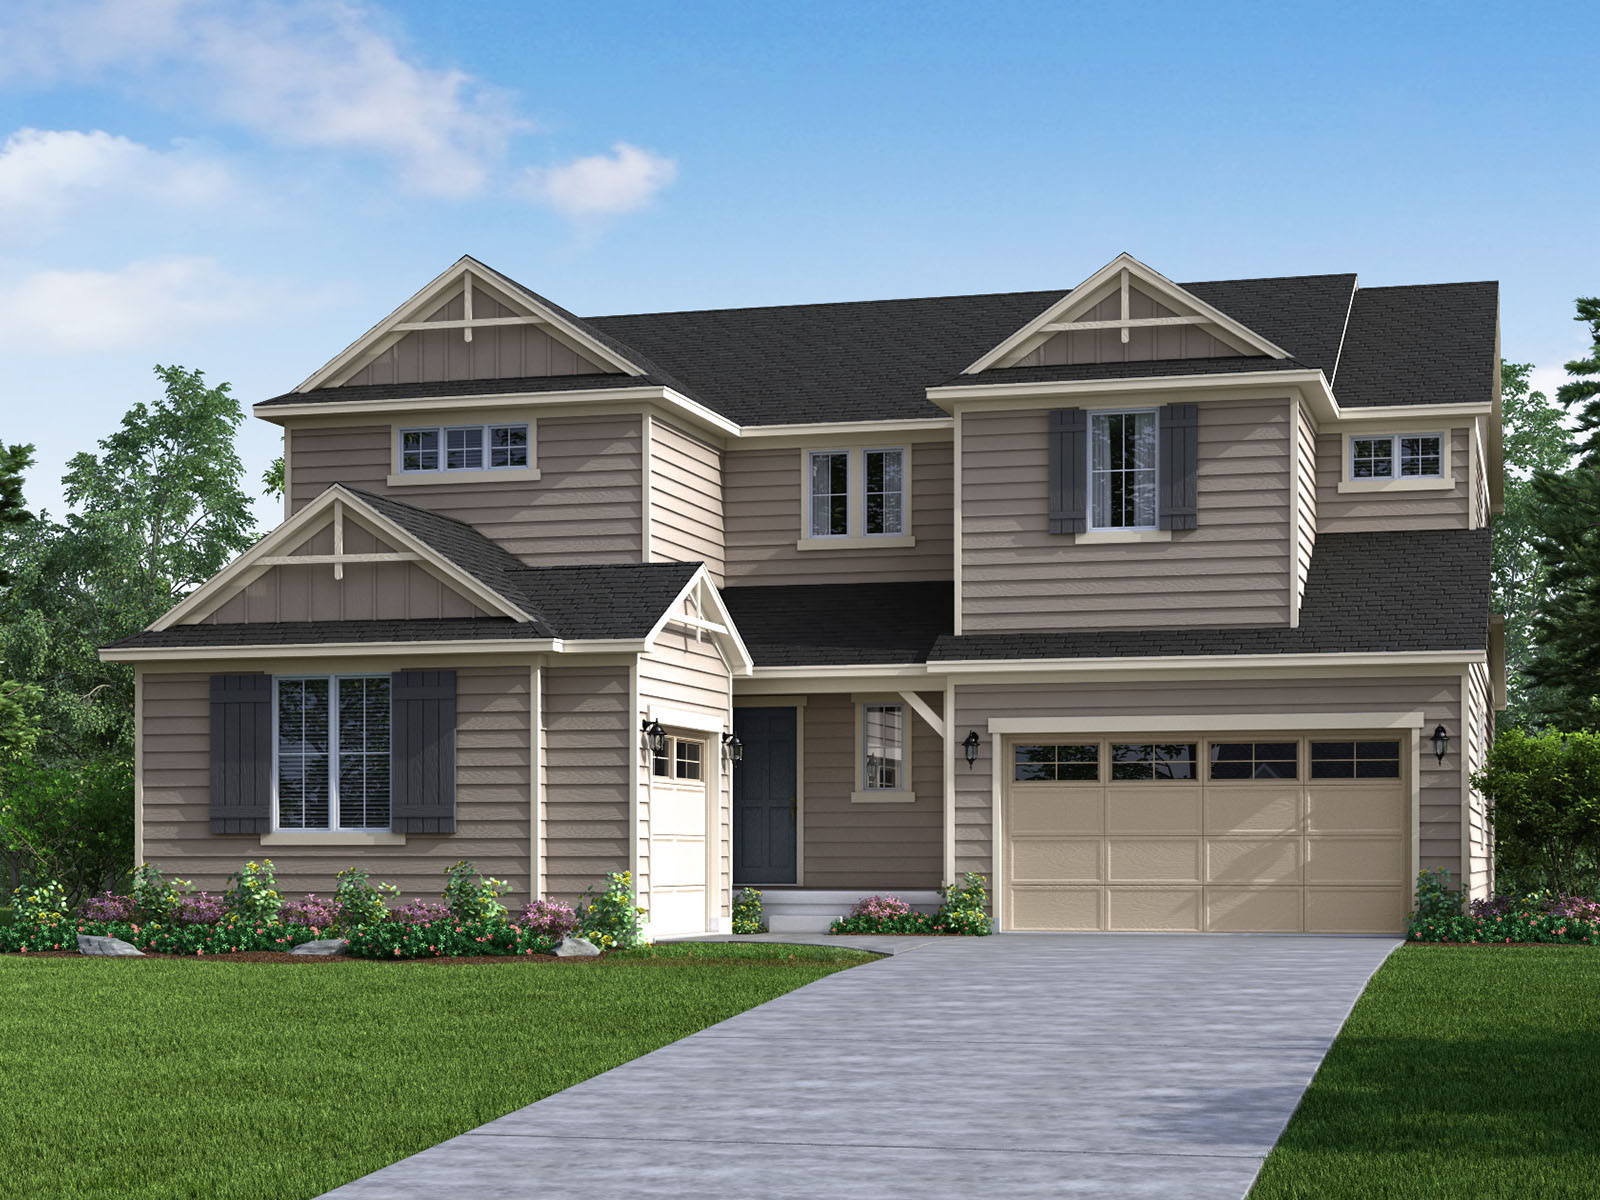 The Trail Ridge Model 4br 4ba Homes For Sale In